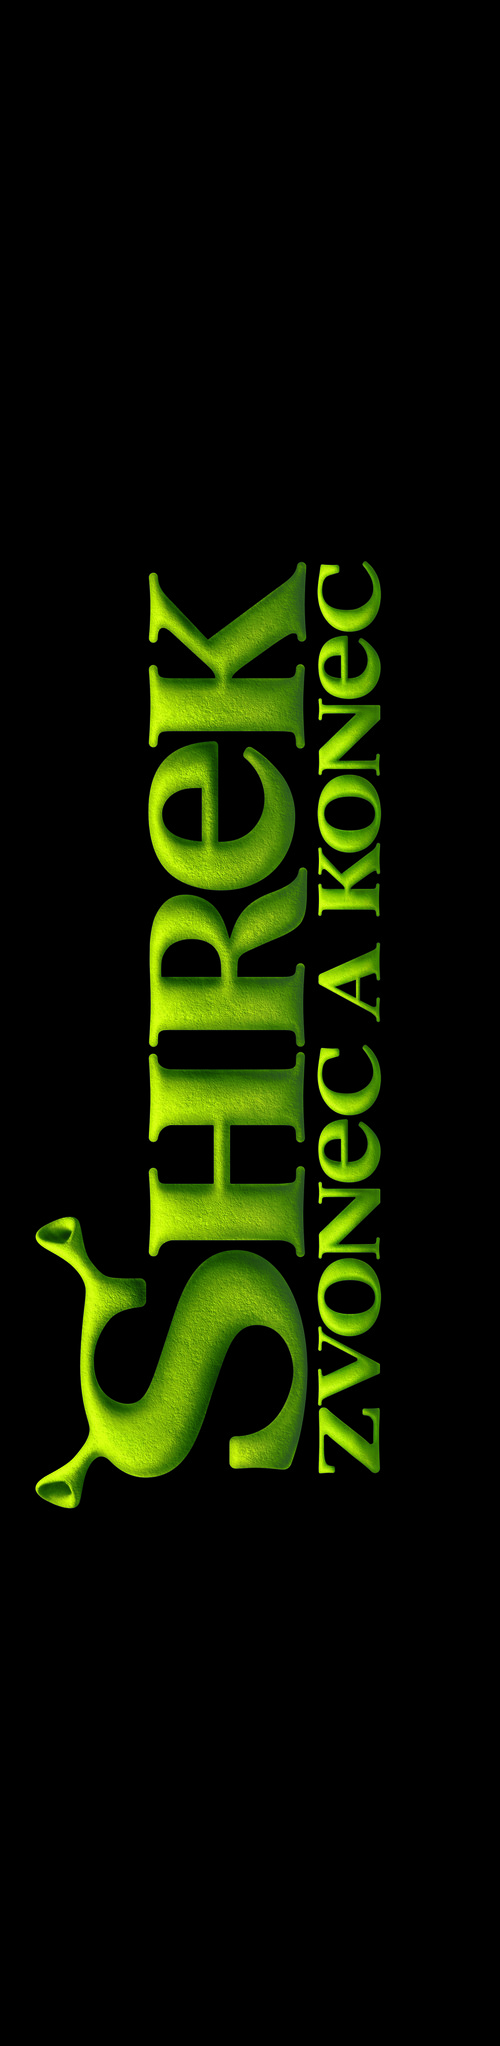 Shrek Forever After - Czech Logo